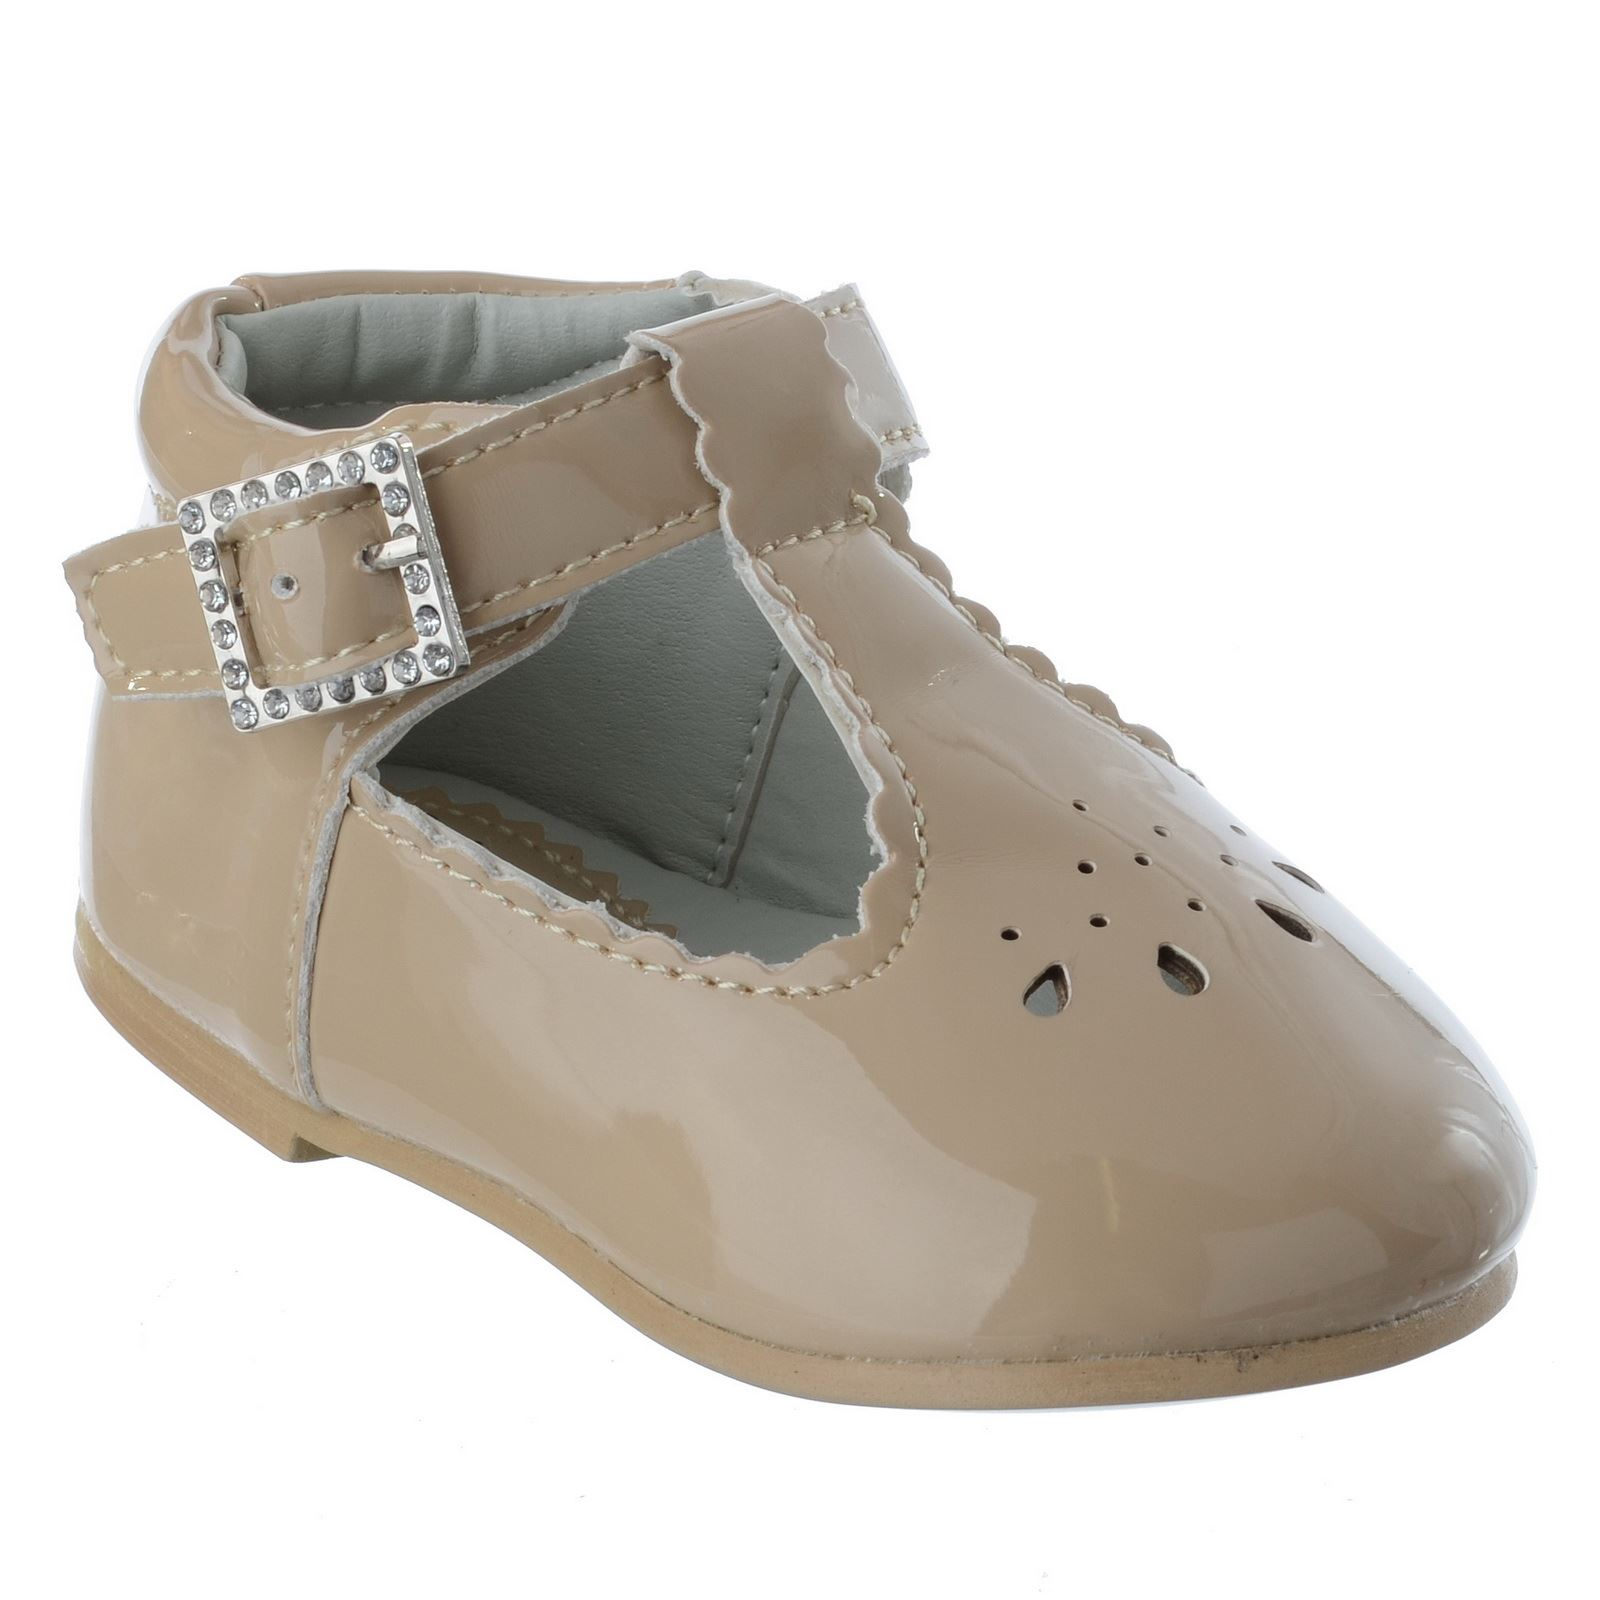 Baby Girl Footwear. Baby shoes for girls are supposed to be cute and practical - and that they are at Crocs™! Our collection comfortable baby girls shoes are just what you need for an early pair of shoes - they weigh only ounces and are easy to clean in case of a mess!